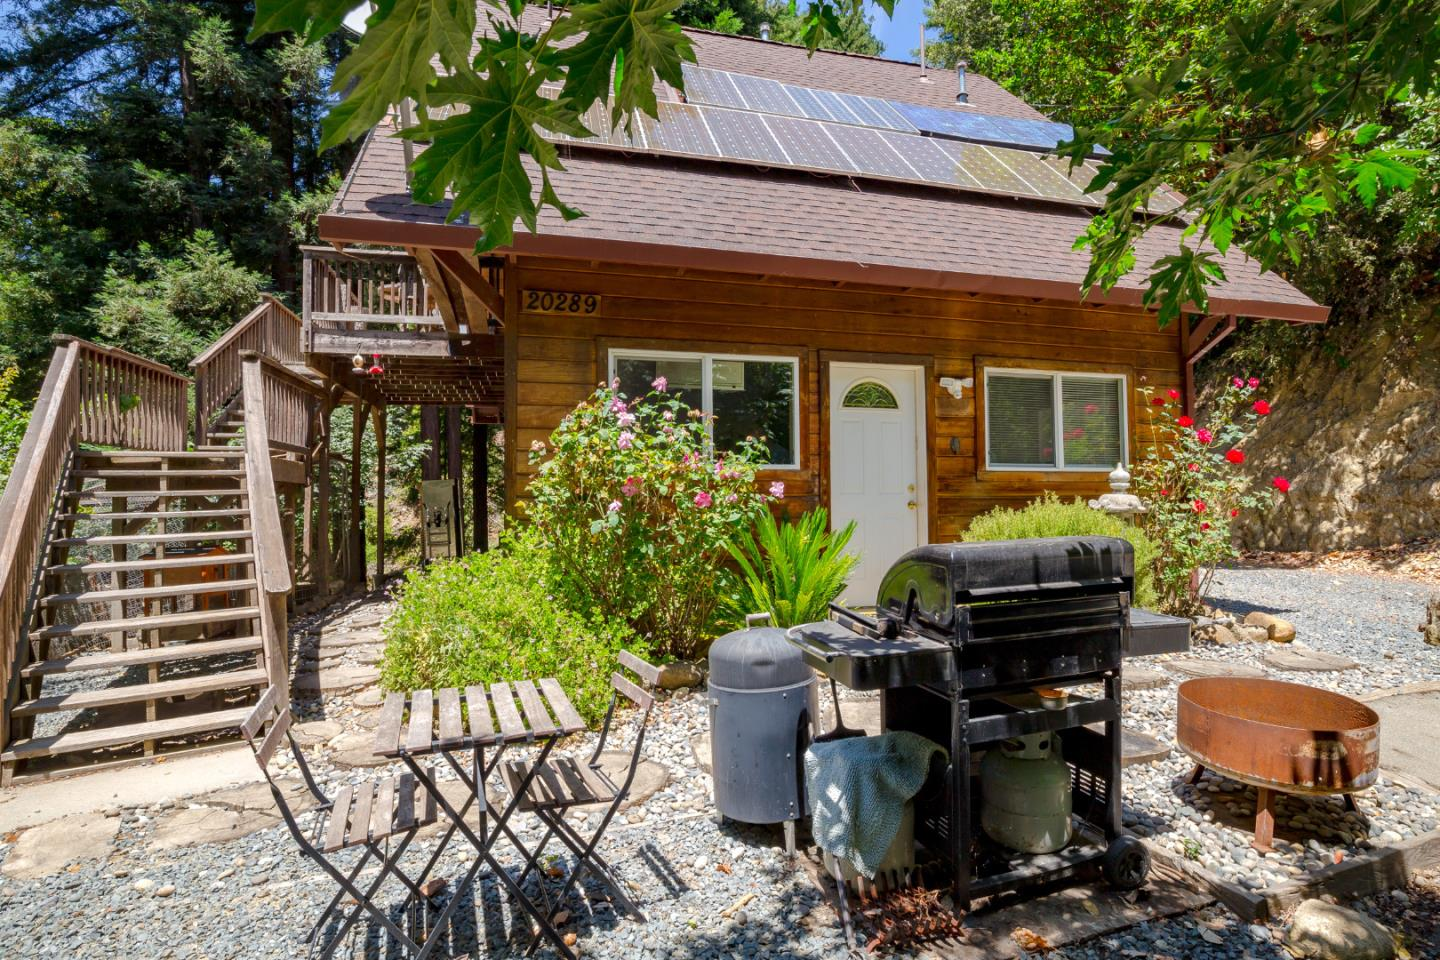 Escape to this Private, Off-Grid Retreat, a lovely and special find. Yes, OFF-GRID! No PG&E power outages EVER! A world away from the stress of city bustle, yet less than 15 minutes to downtown Los Gatos. Two-story main home with multiple outbuildings including a spa/tiny house getaway, large container workshop, storage buildings, storage containers and more. Residential compound or rental income potential. This well-loved property is anchored by magnificent old growth, watered by the creek, and powered by the sun. Hug a huge ancient redwood in a meditative spot by the creek. Plentiful parking with separation of space and room for large gatherings. Shared gated entry. Partially paved/dirt road. Paved driveway to the main house. Come see this Mountain beauty.